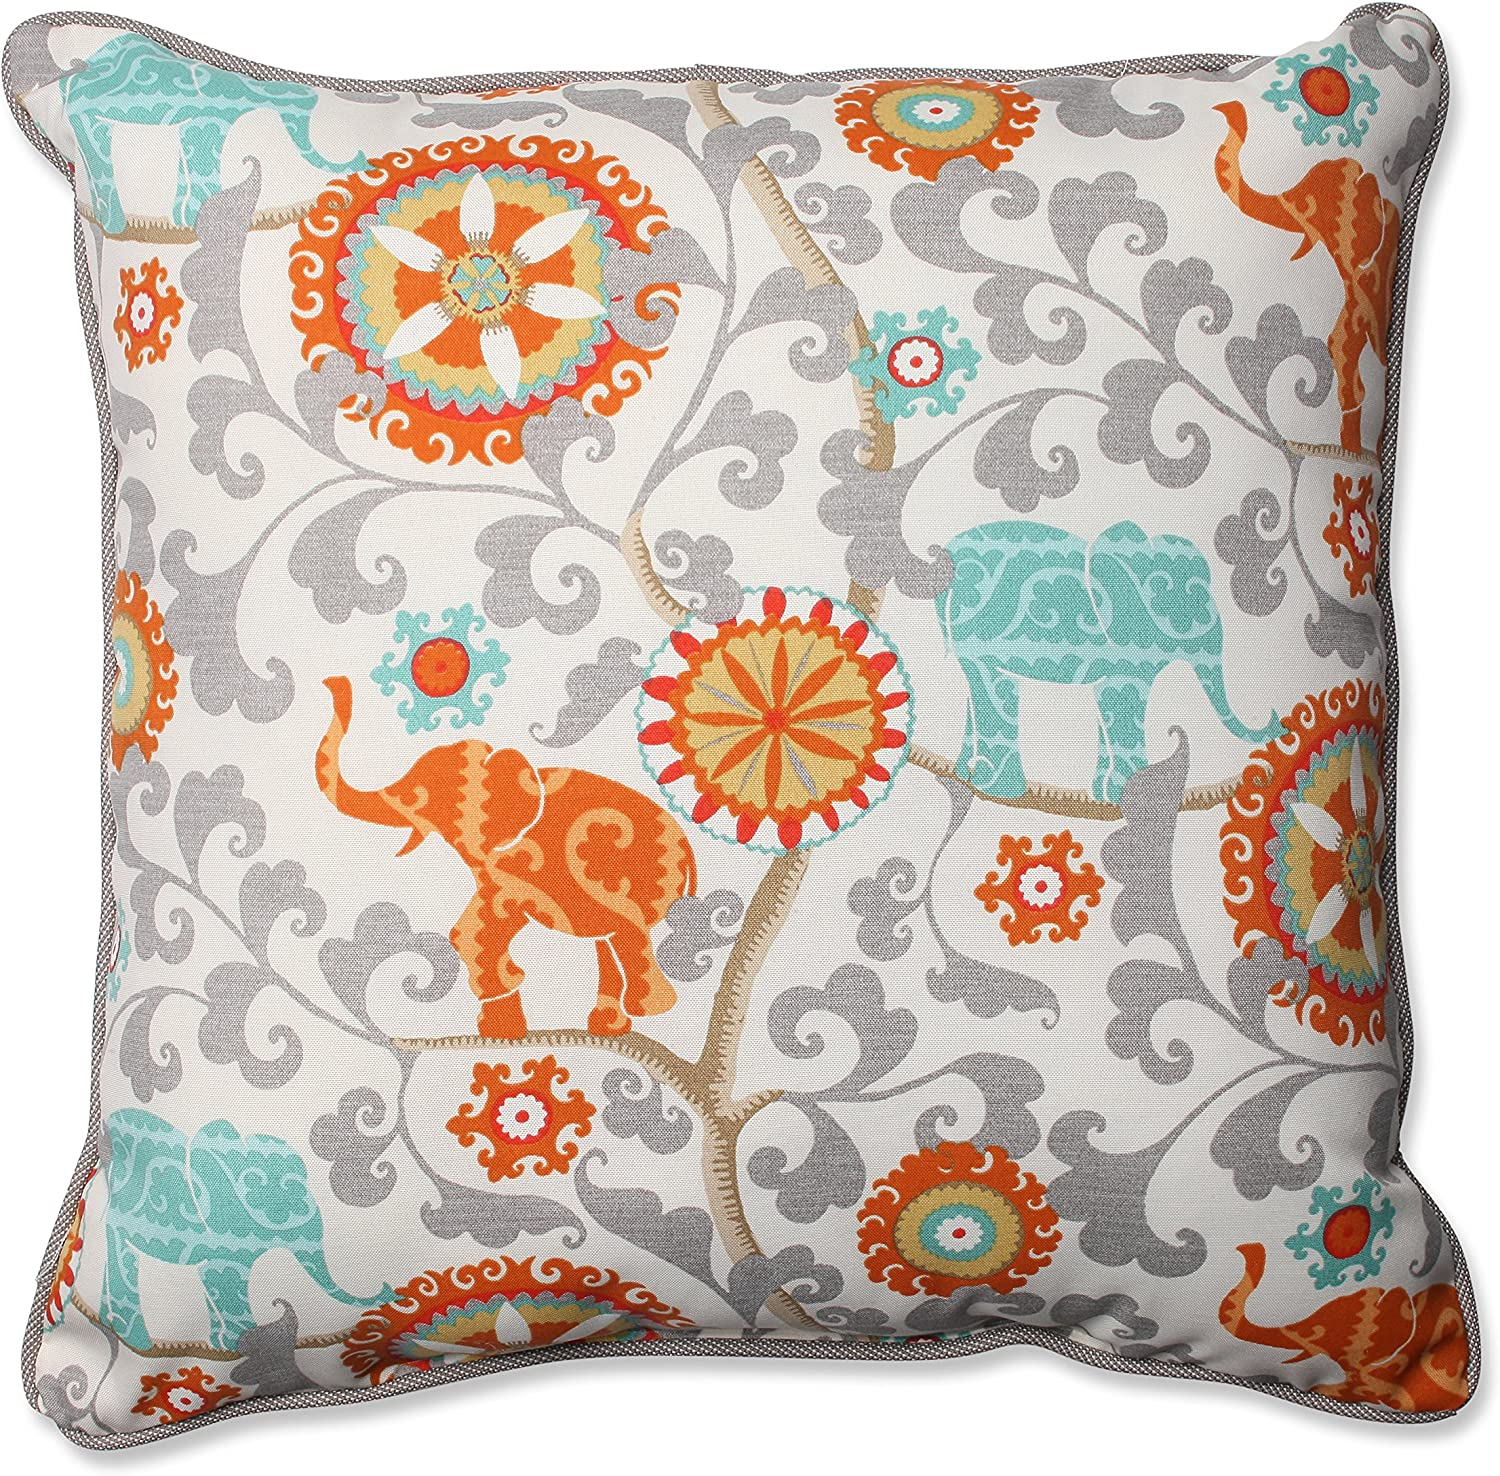 Pillow Perfect Outdoor Indoor Menagerie Cayenne Floor Pillow, 25